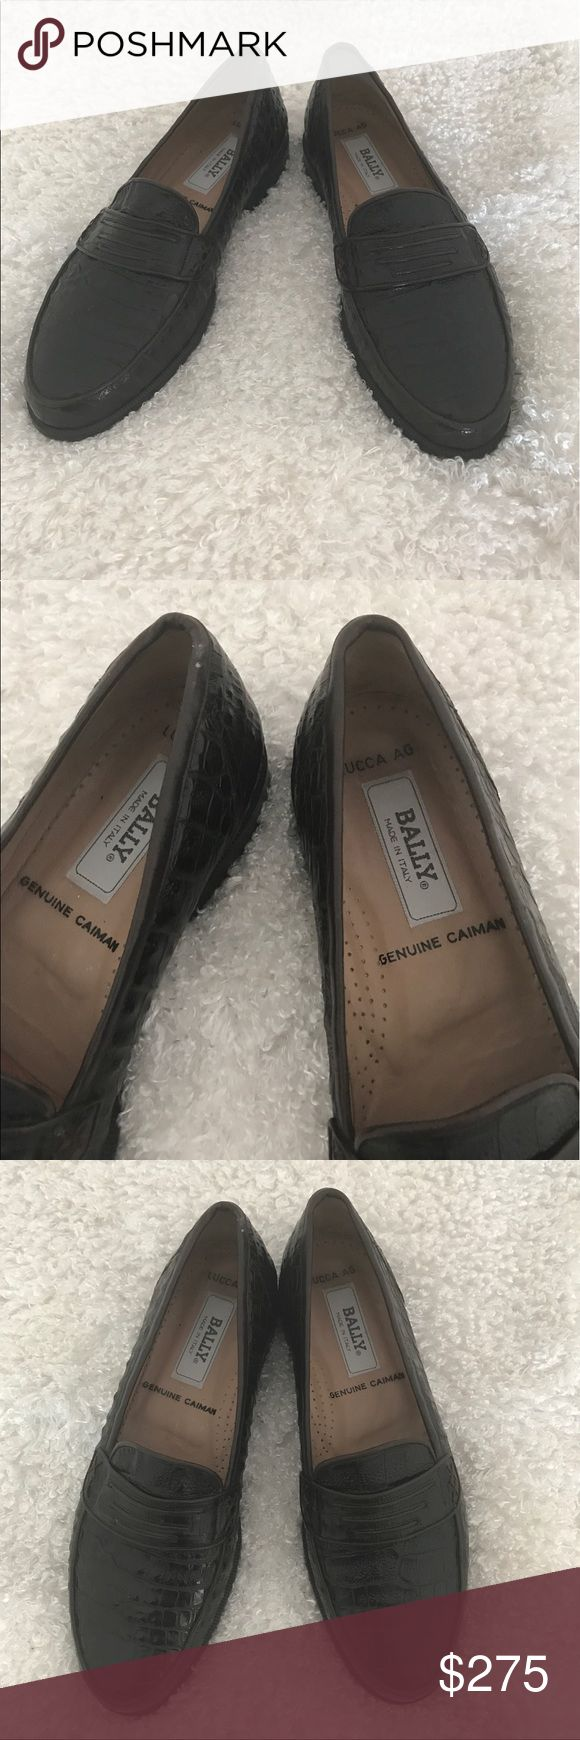 BALLY'S MENS SHOES BALLY'S MENS SHOES SIZE 9 1/2 M DARK BROWN REAL CAIMAN. MADE IN ITALY BALLY Shoes Loafers & Slip-Ons